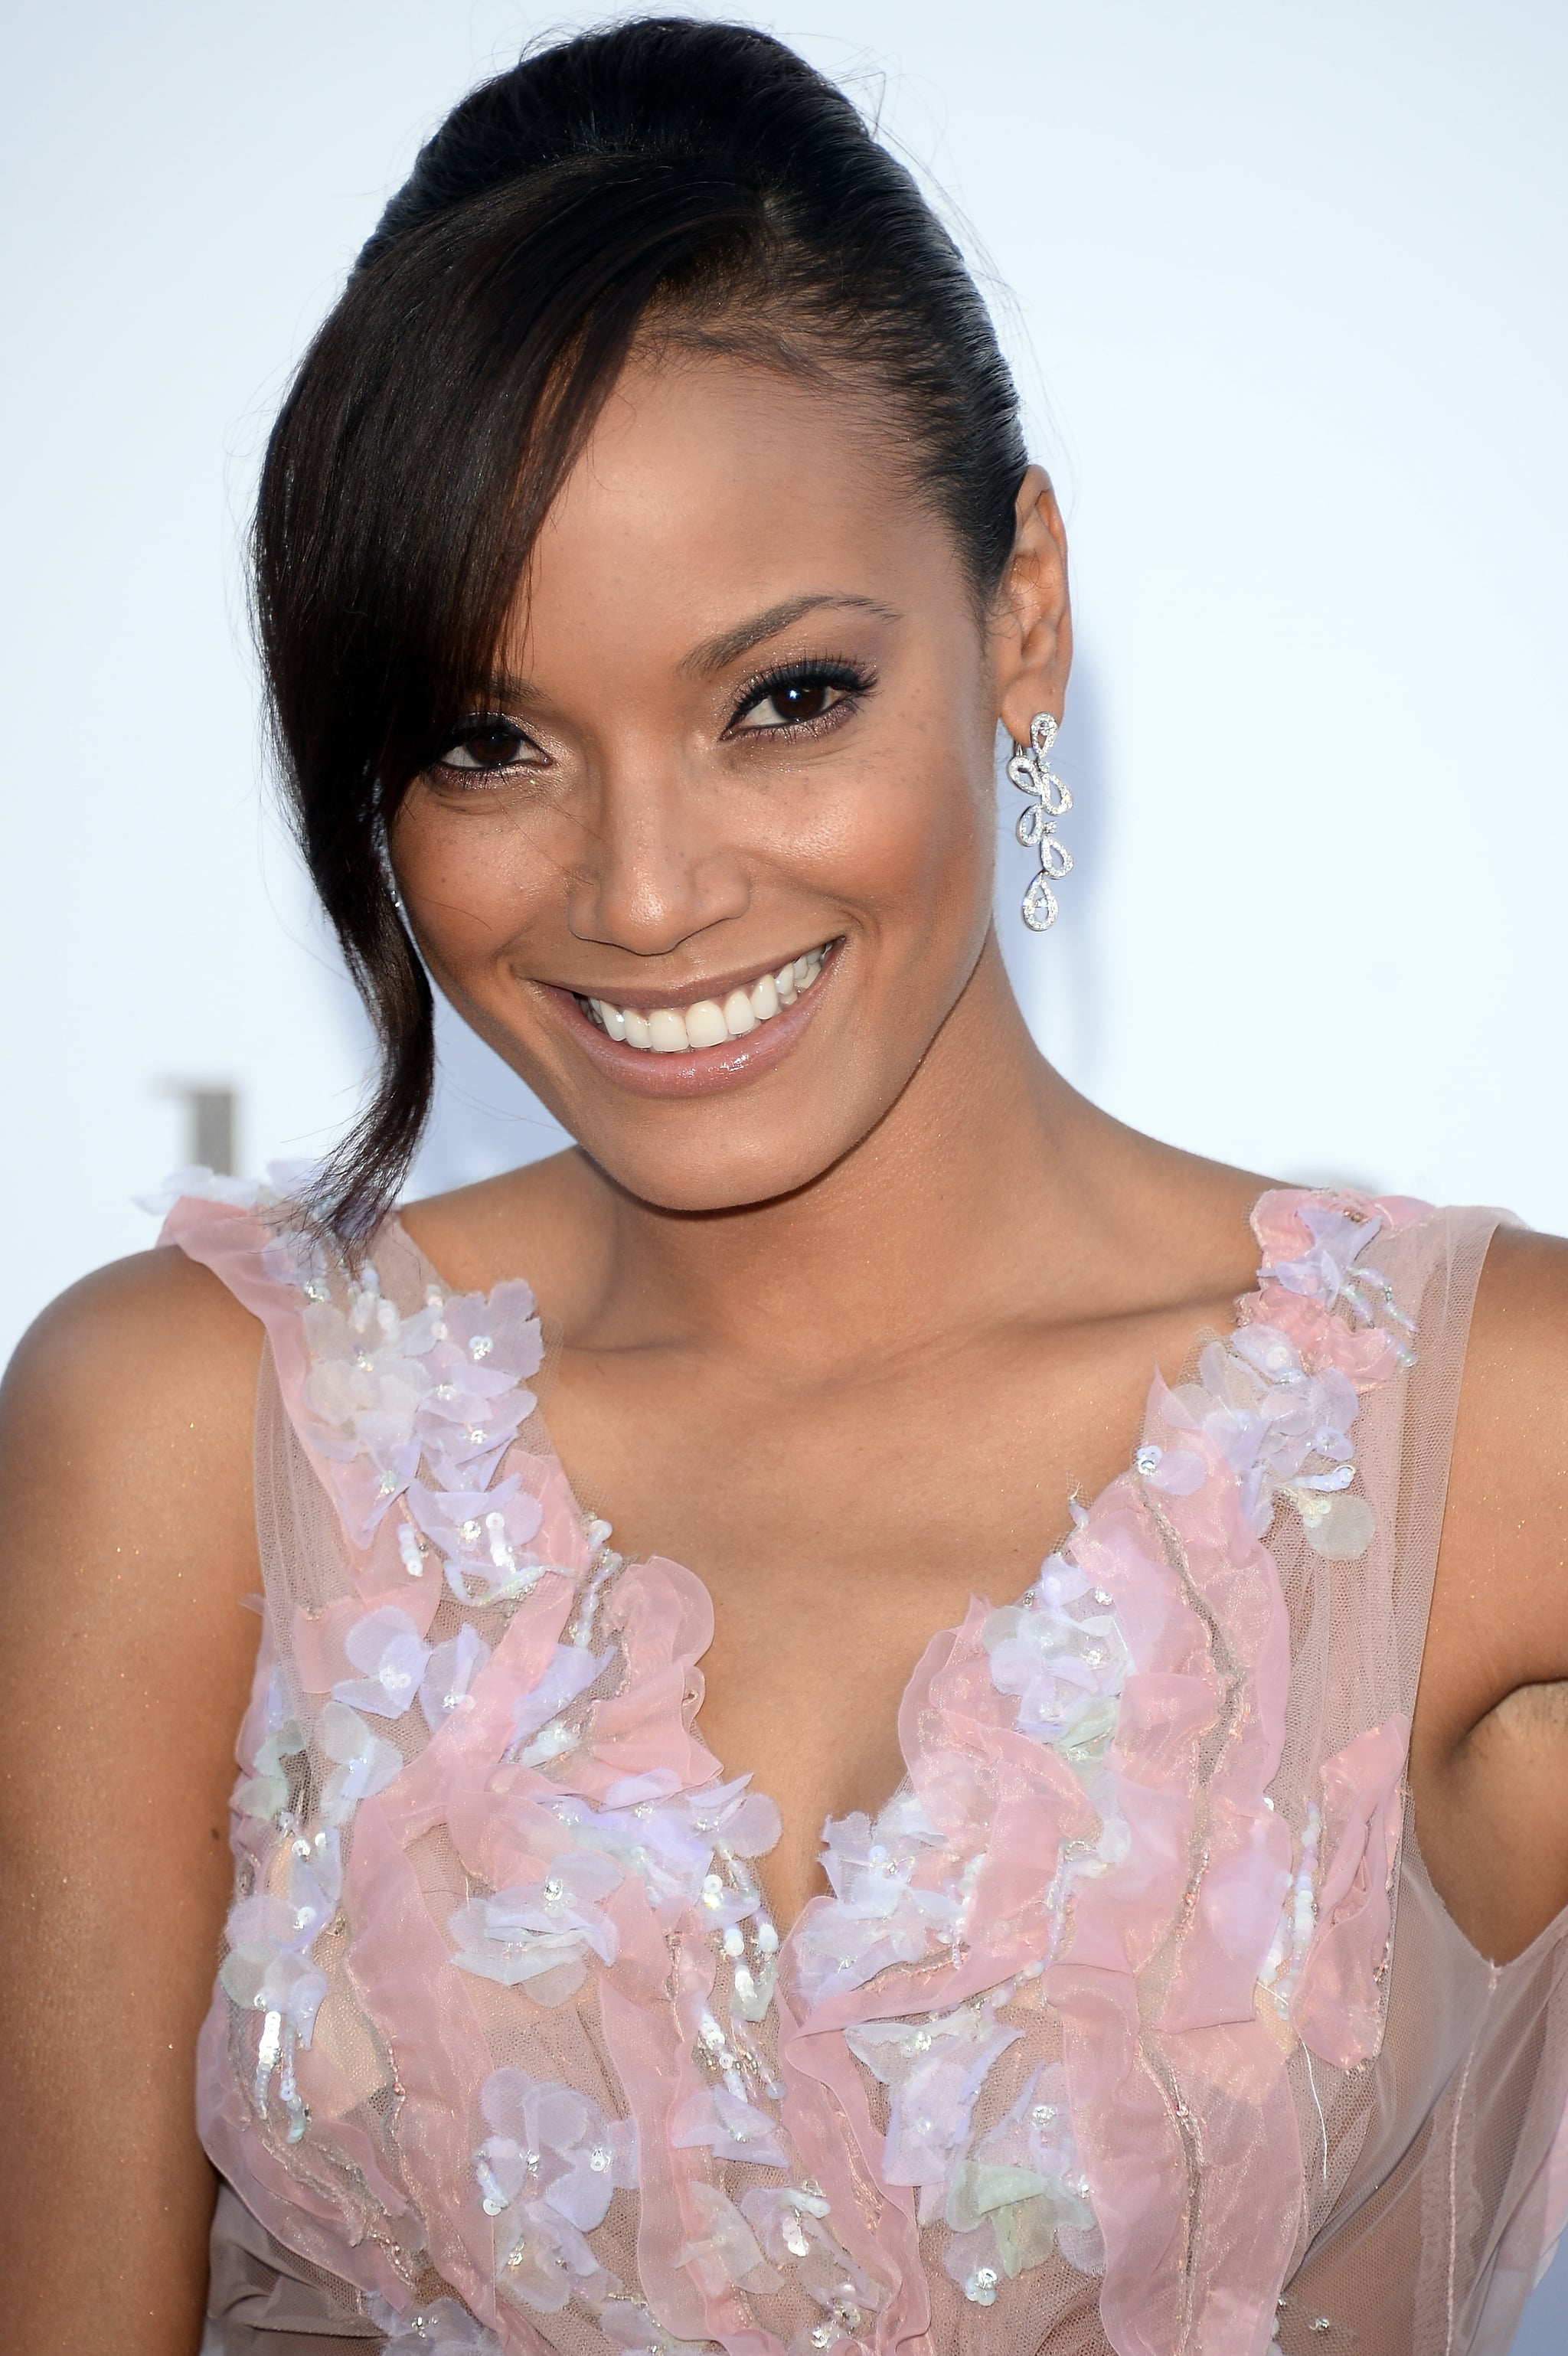 Sideswept bangs and a sleek French roll were the highlight of Selita Ebanks's amfAR look, while her makeup was au naturale.